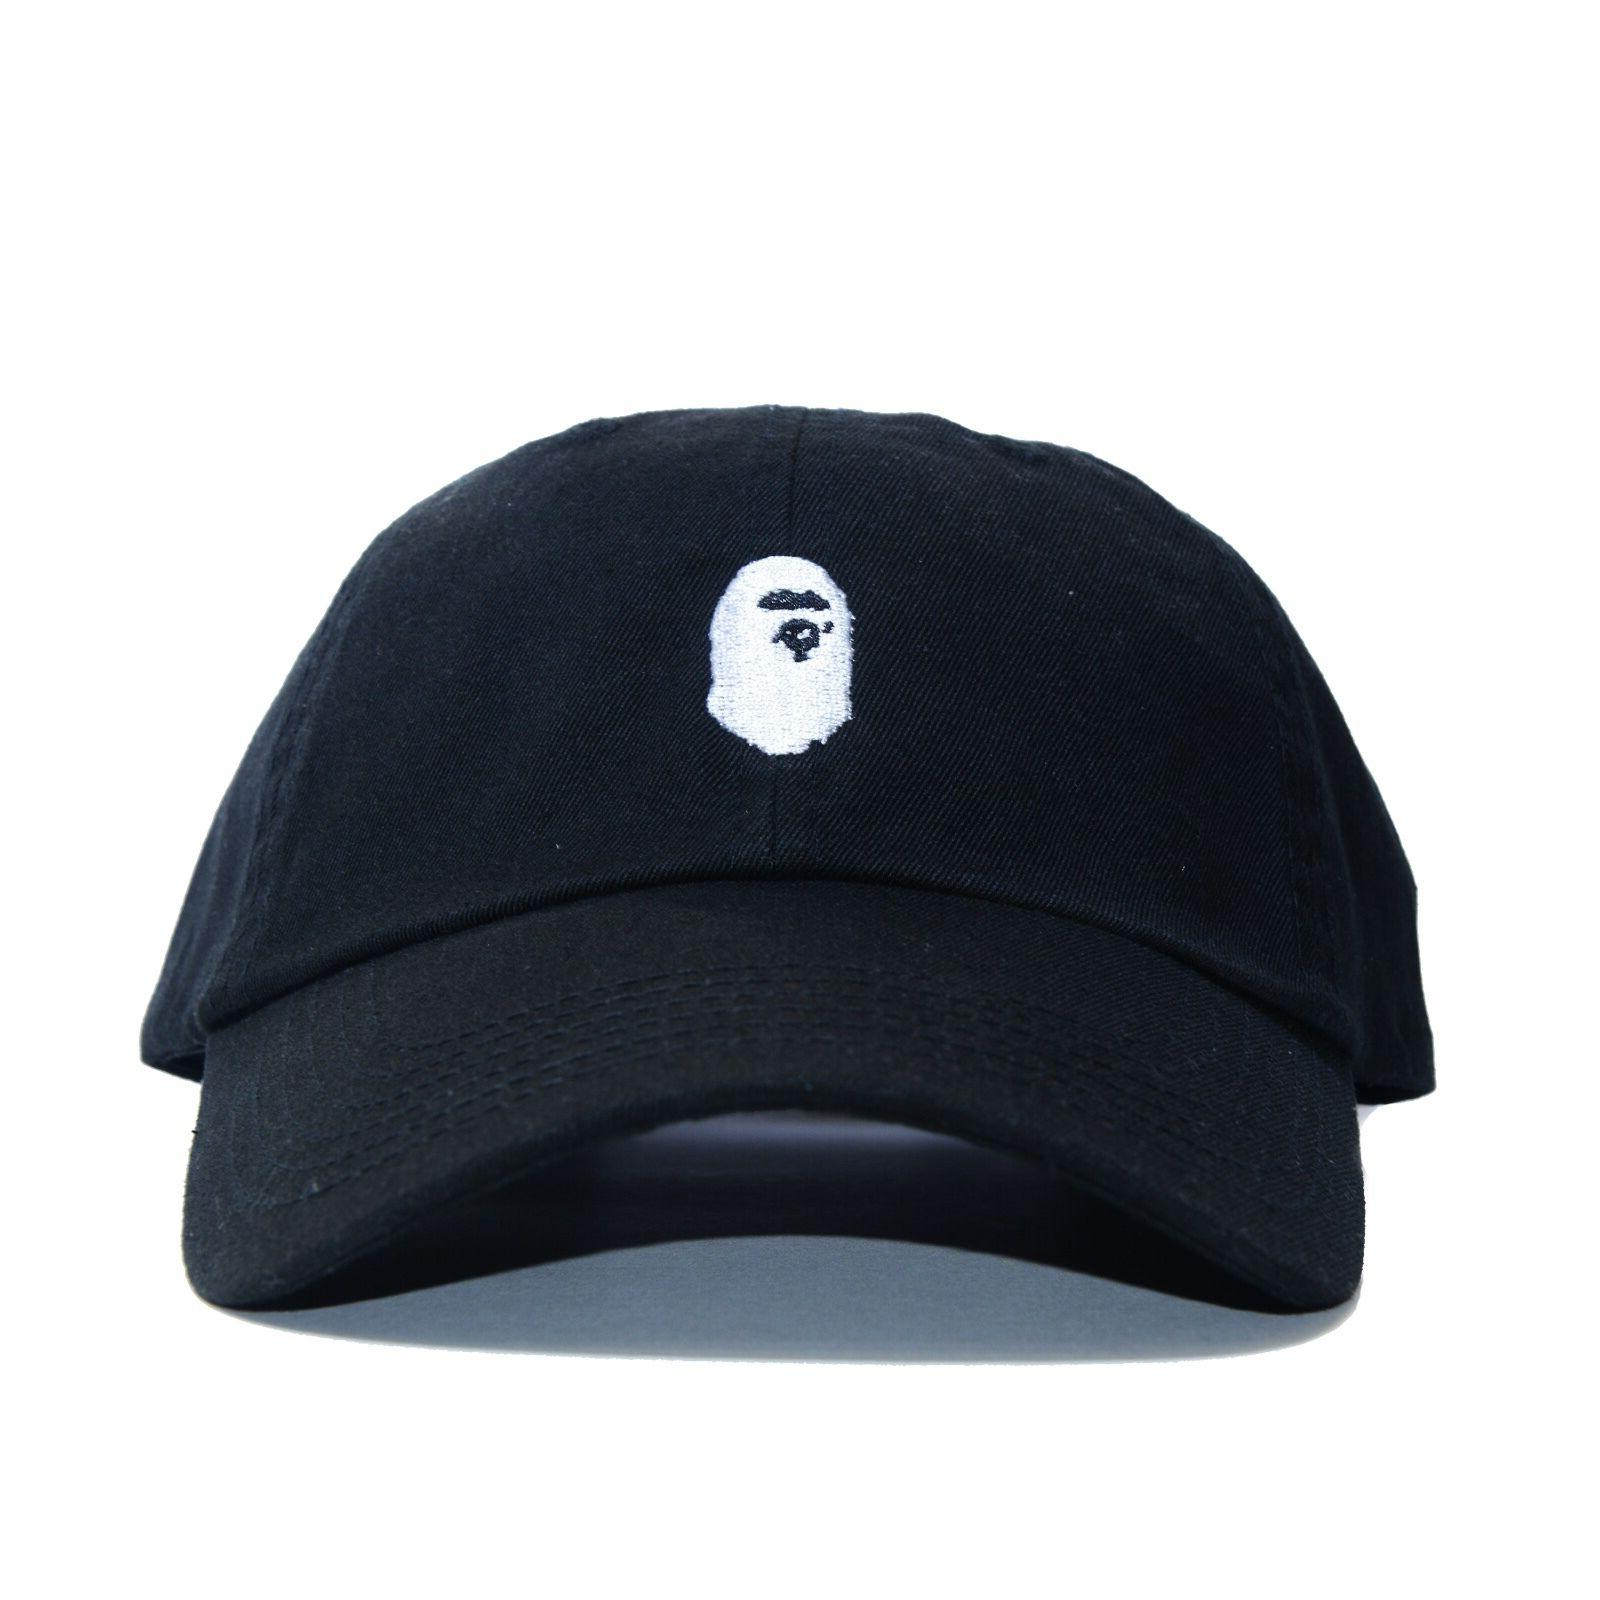 """BAPE"" (BATHING APE HEAD AAPE unsturctured ALL COLOR"